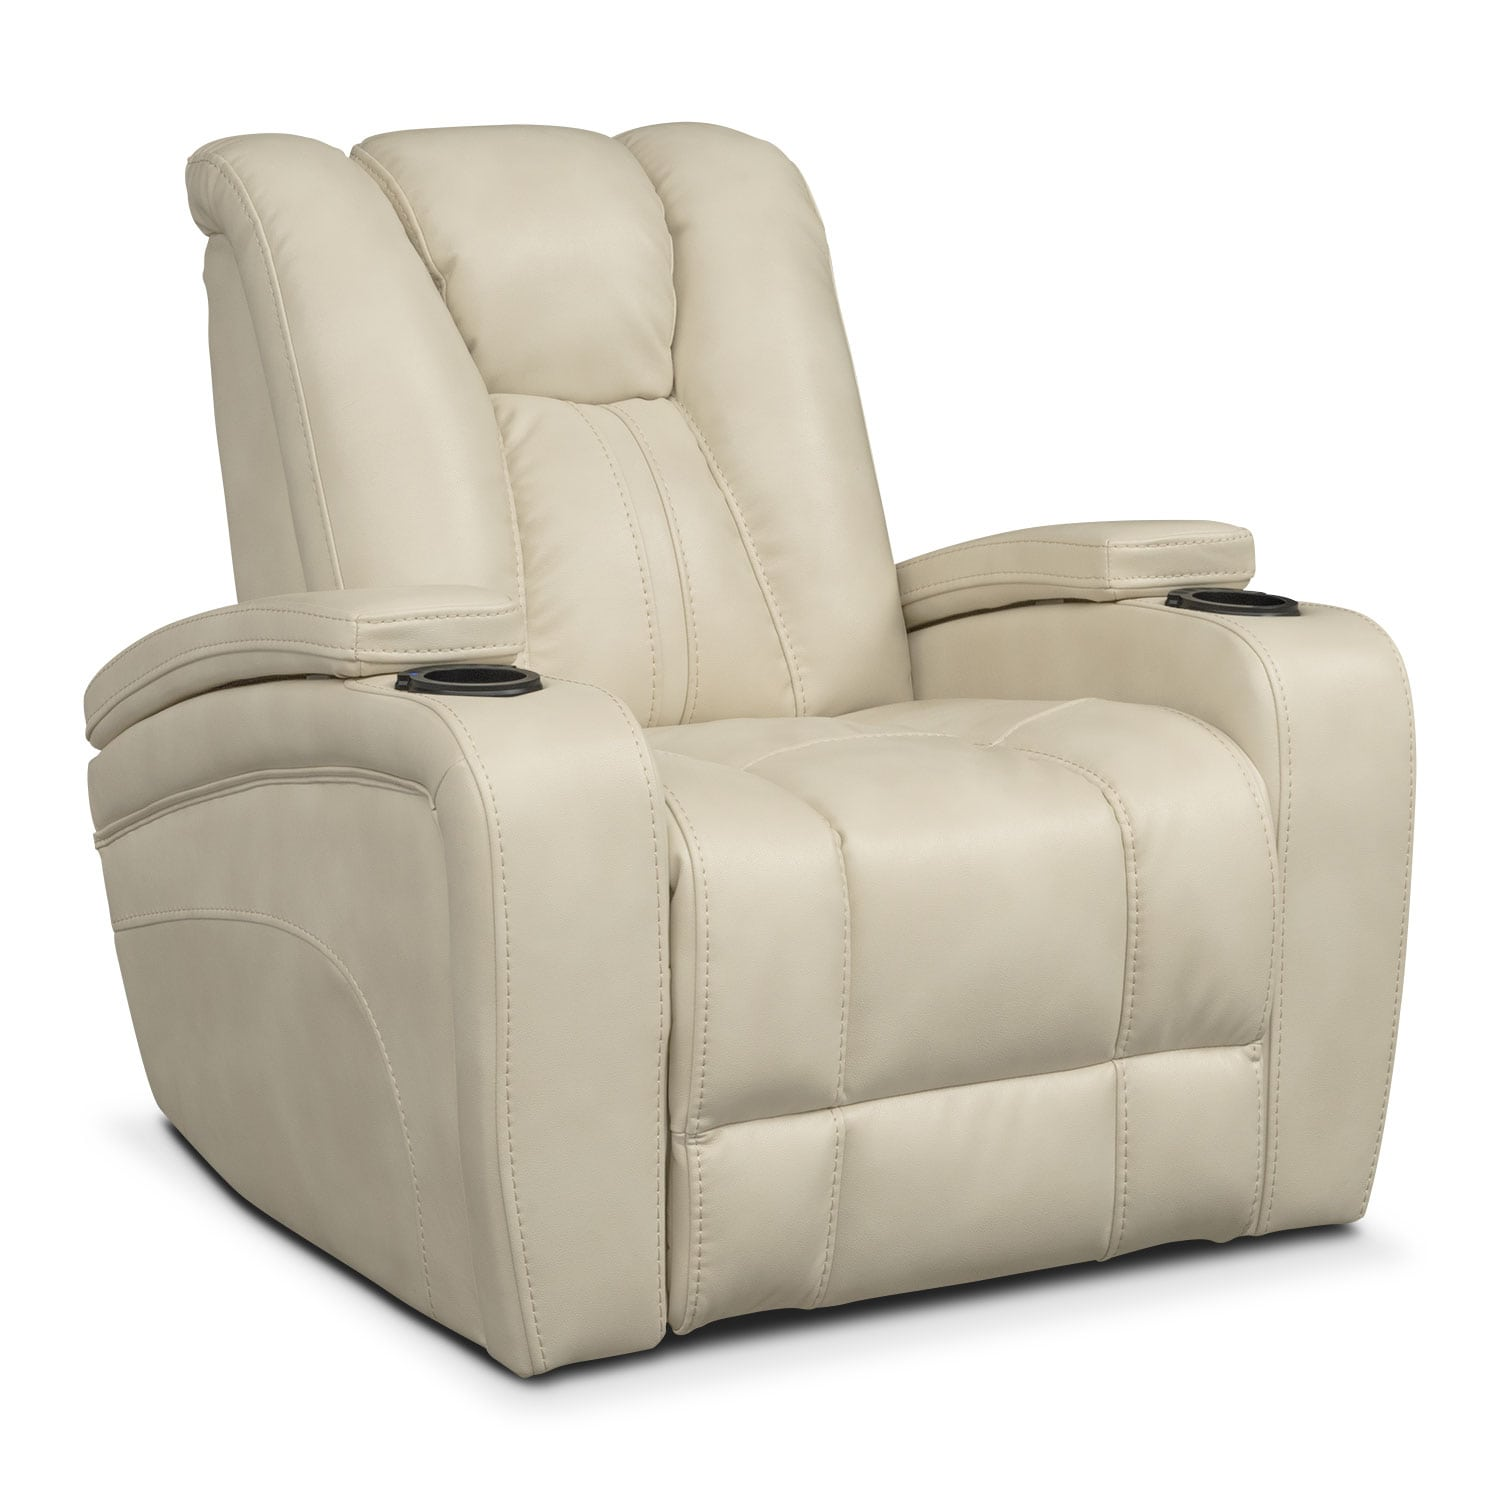 Living Room Furniture - Pulsar Power Recliner - Cream